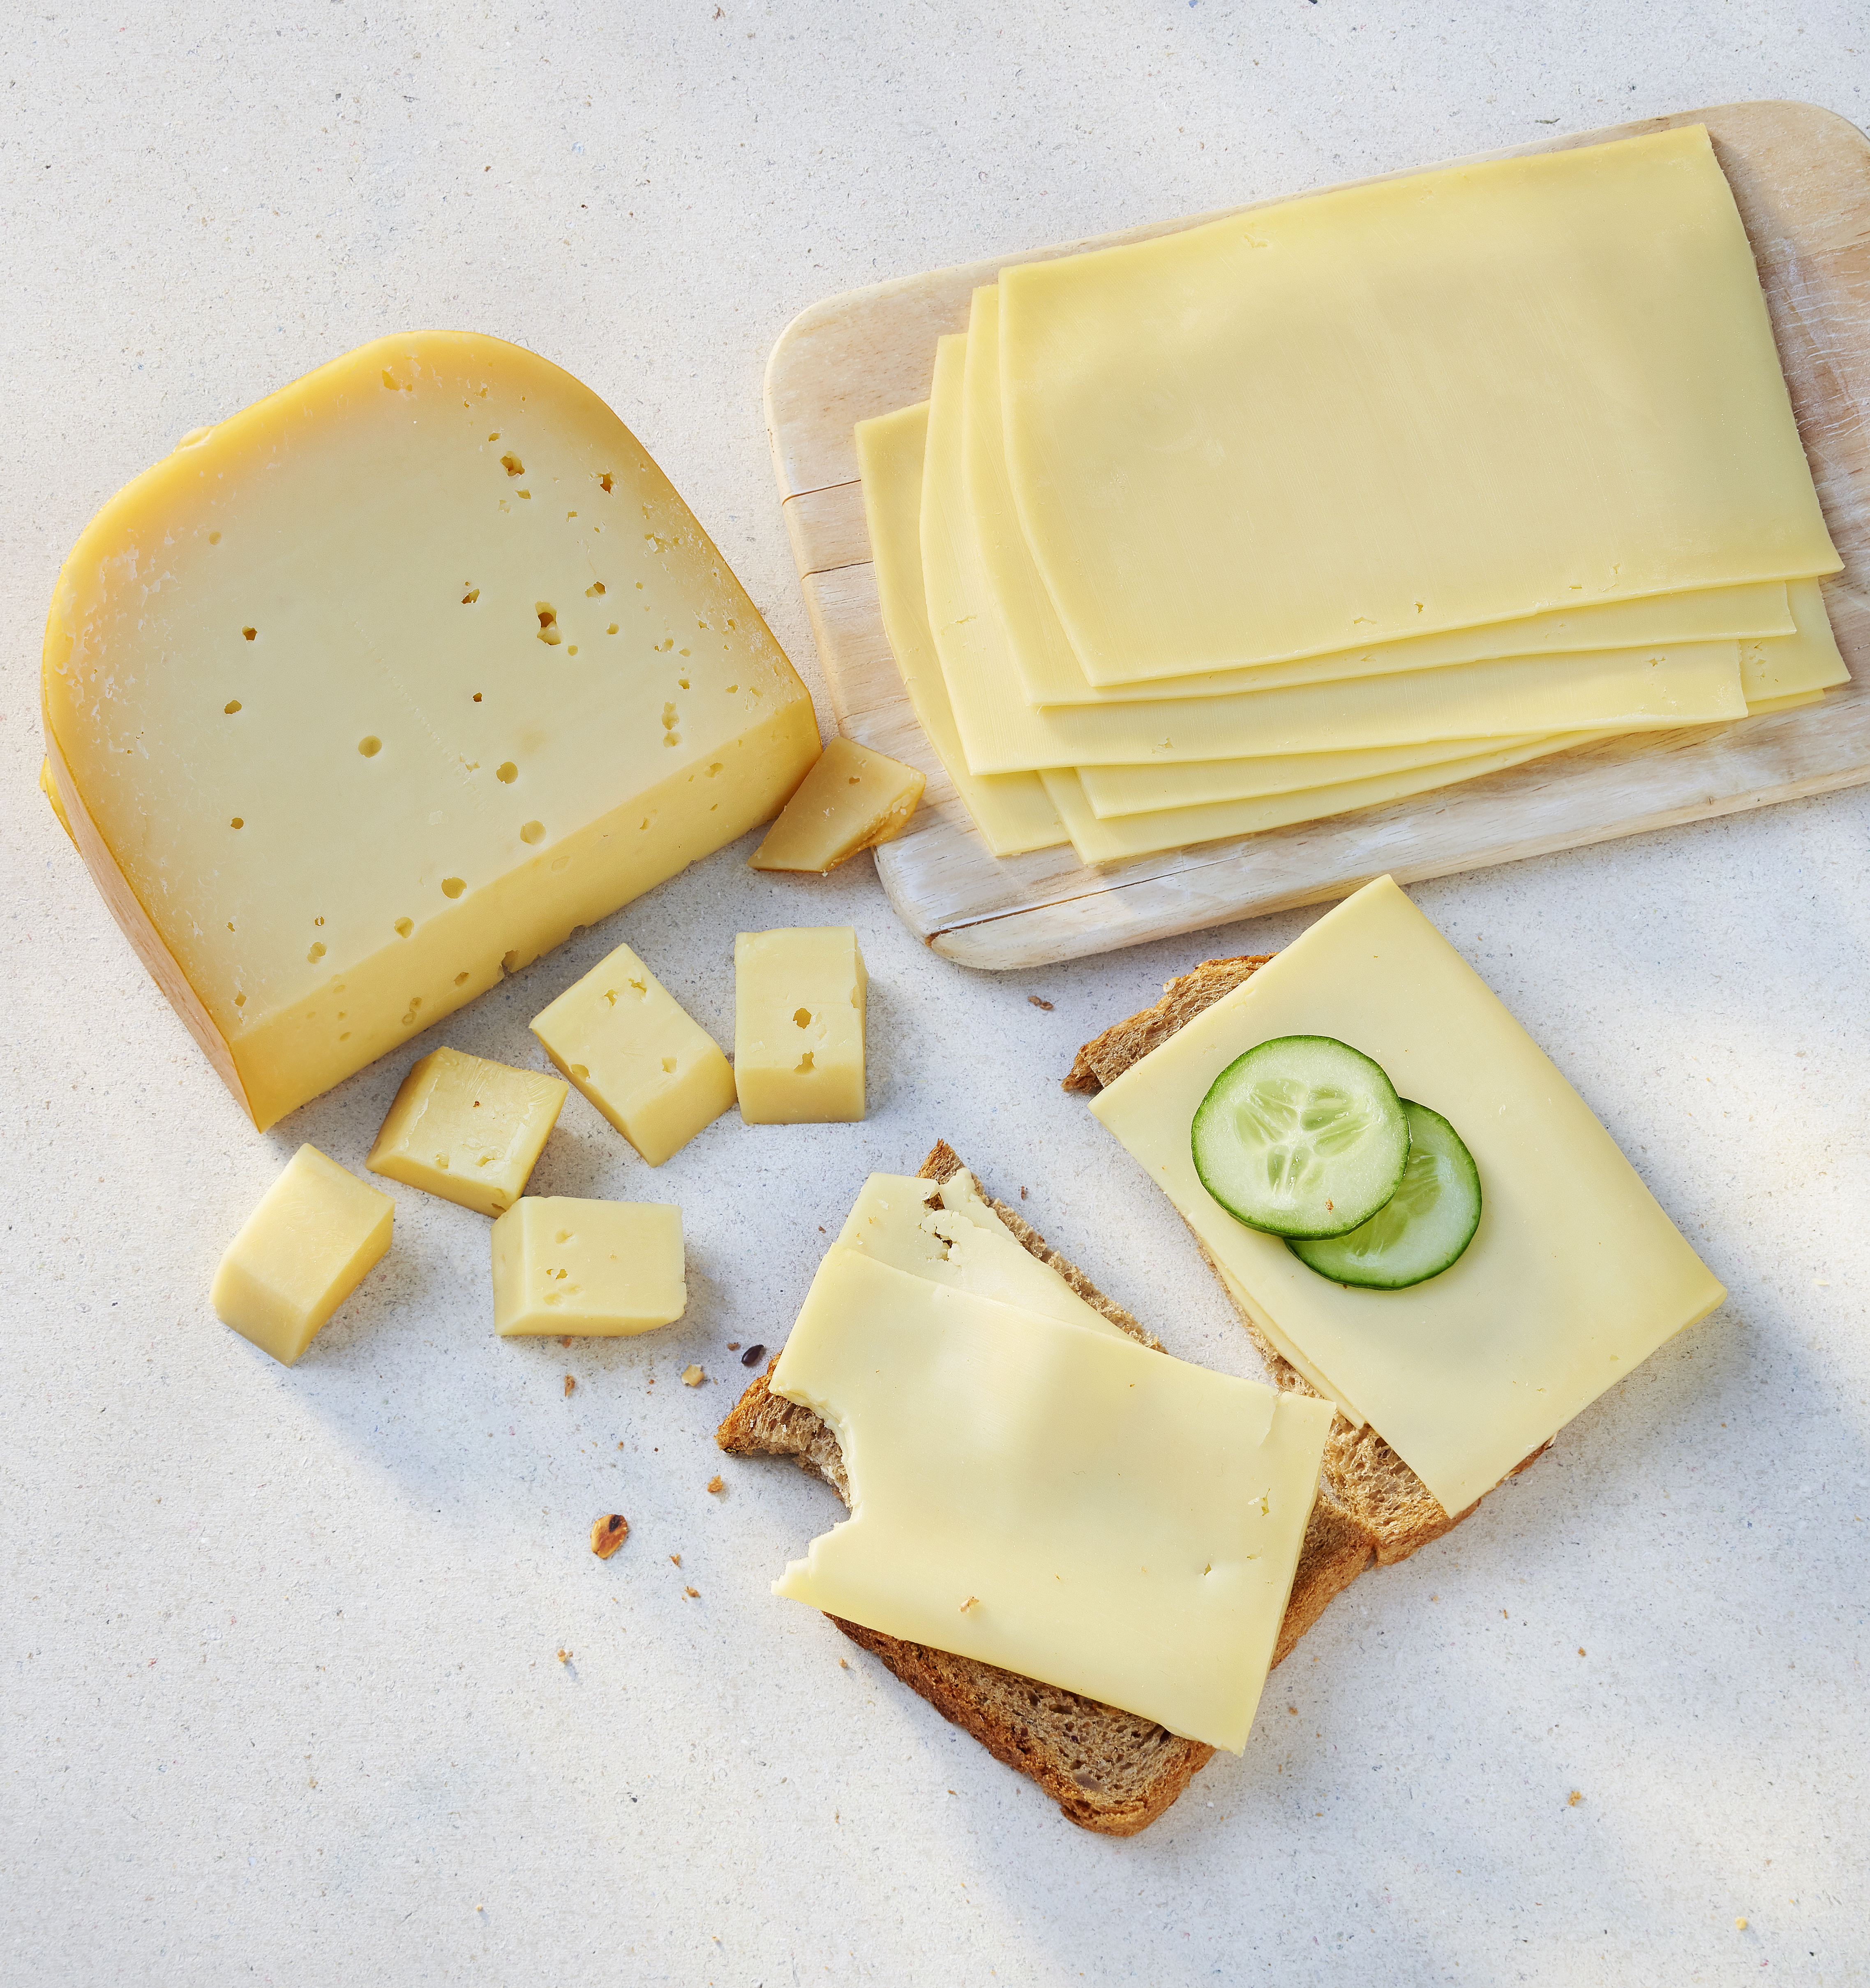 cheese pieces and slices on a slice of bread